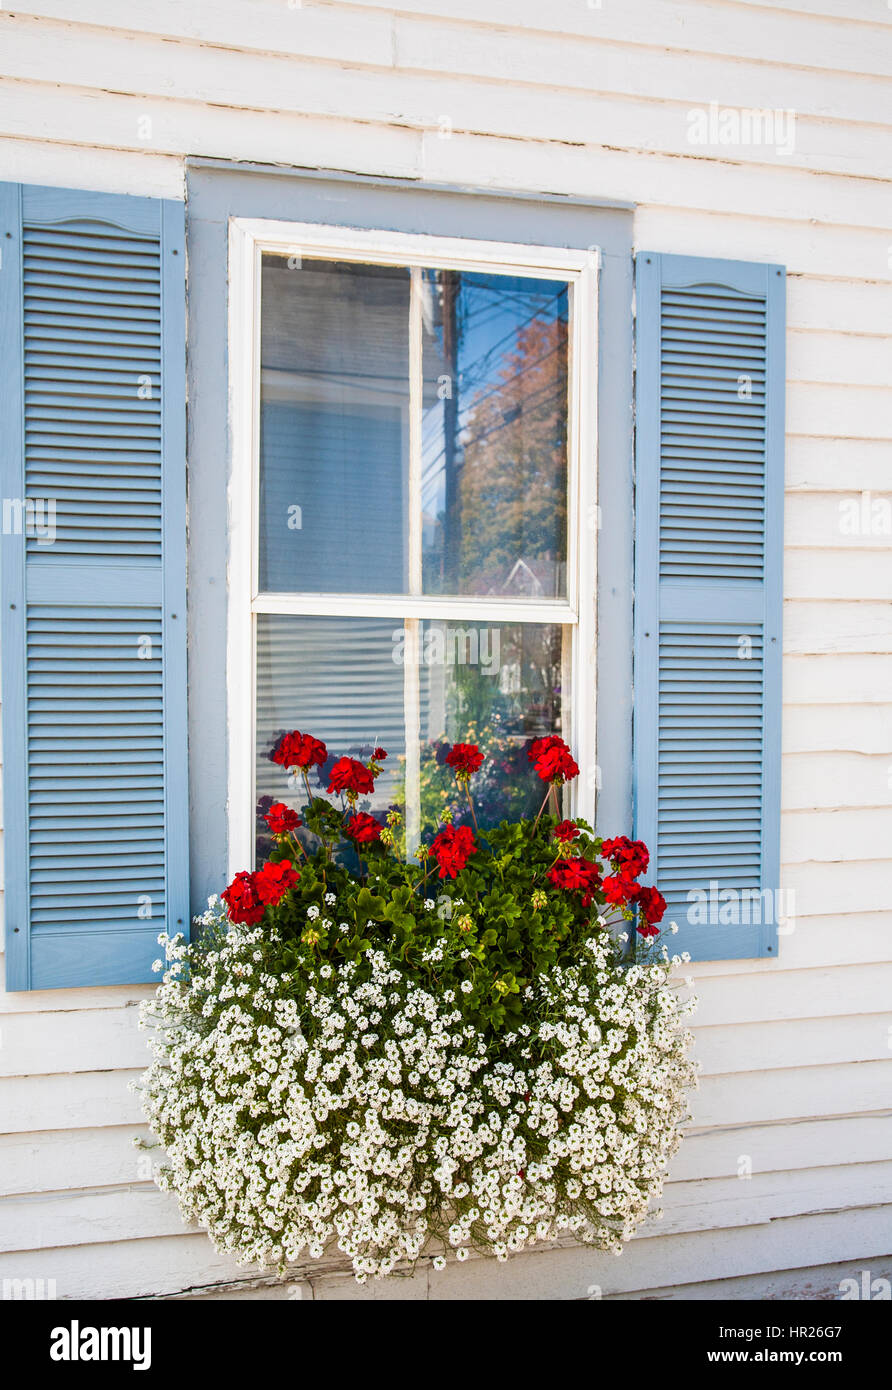 Vintage House Window With Blue Shutters And A Windowbox